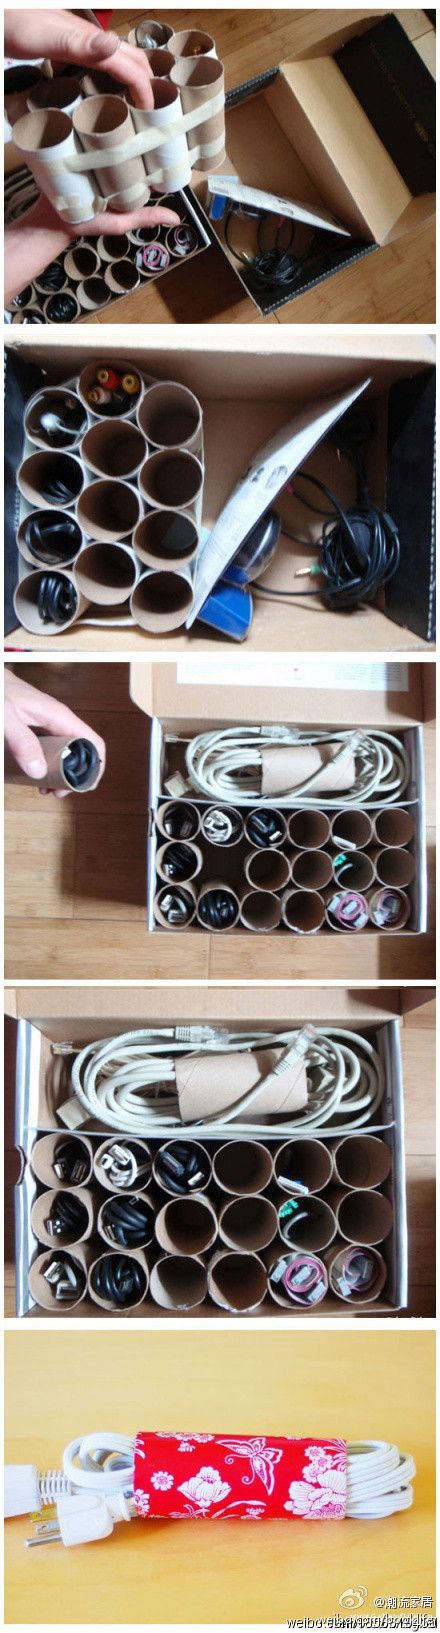 Recycle Toilet Paper Rolls For Organizing DIY. I am doing this for all of the game/phone/computer chargers.